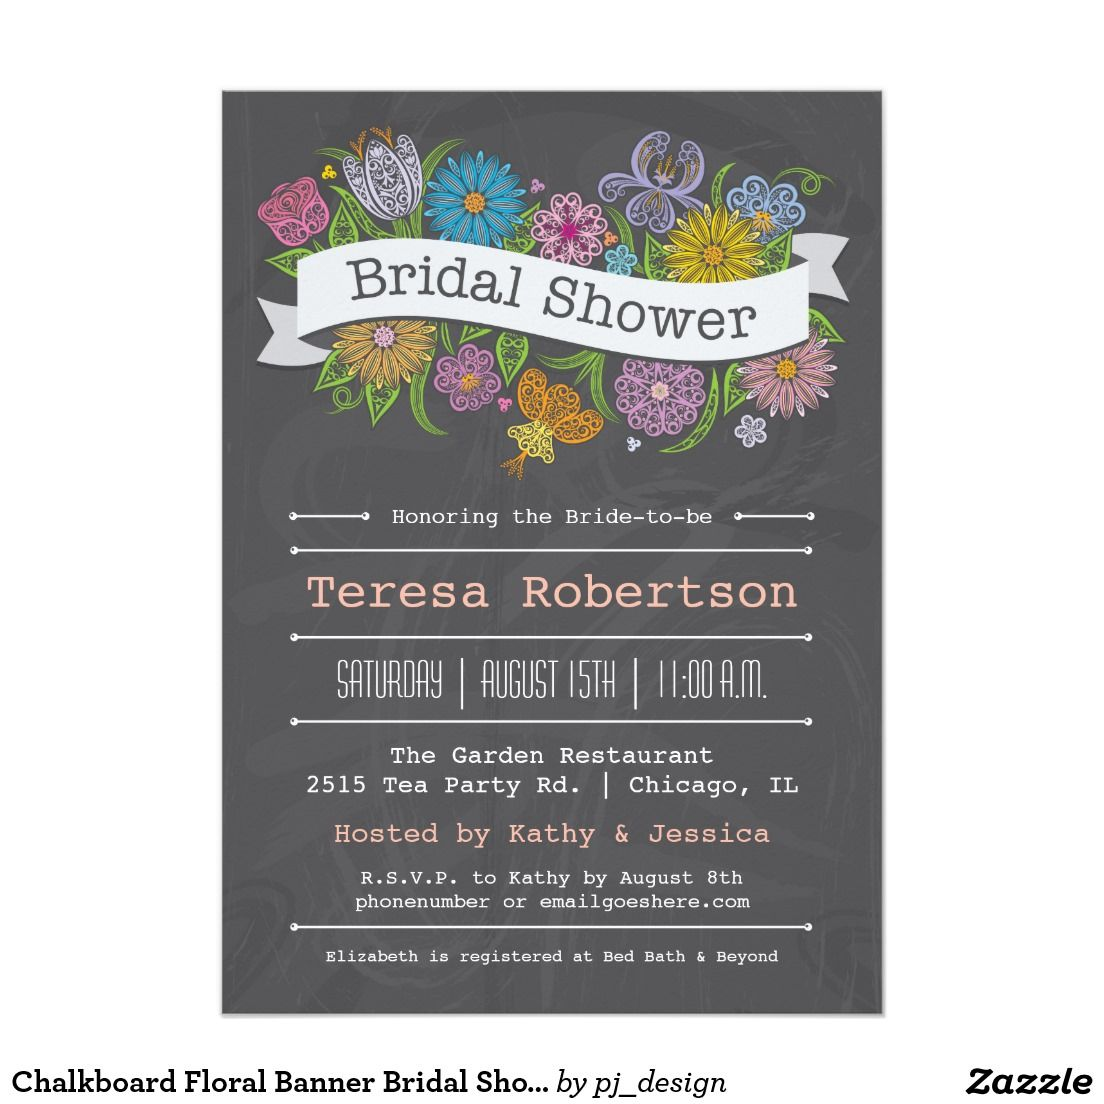 Chalkboard Floral Banner Bridal Shower InvitationElegant